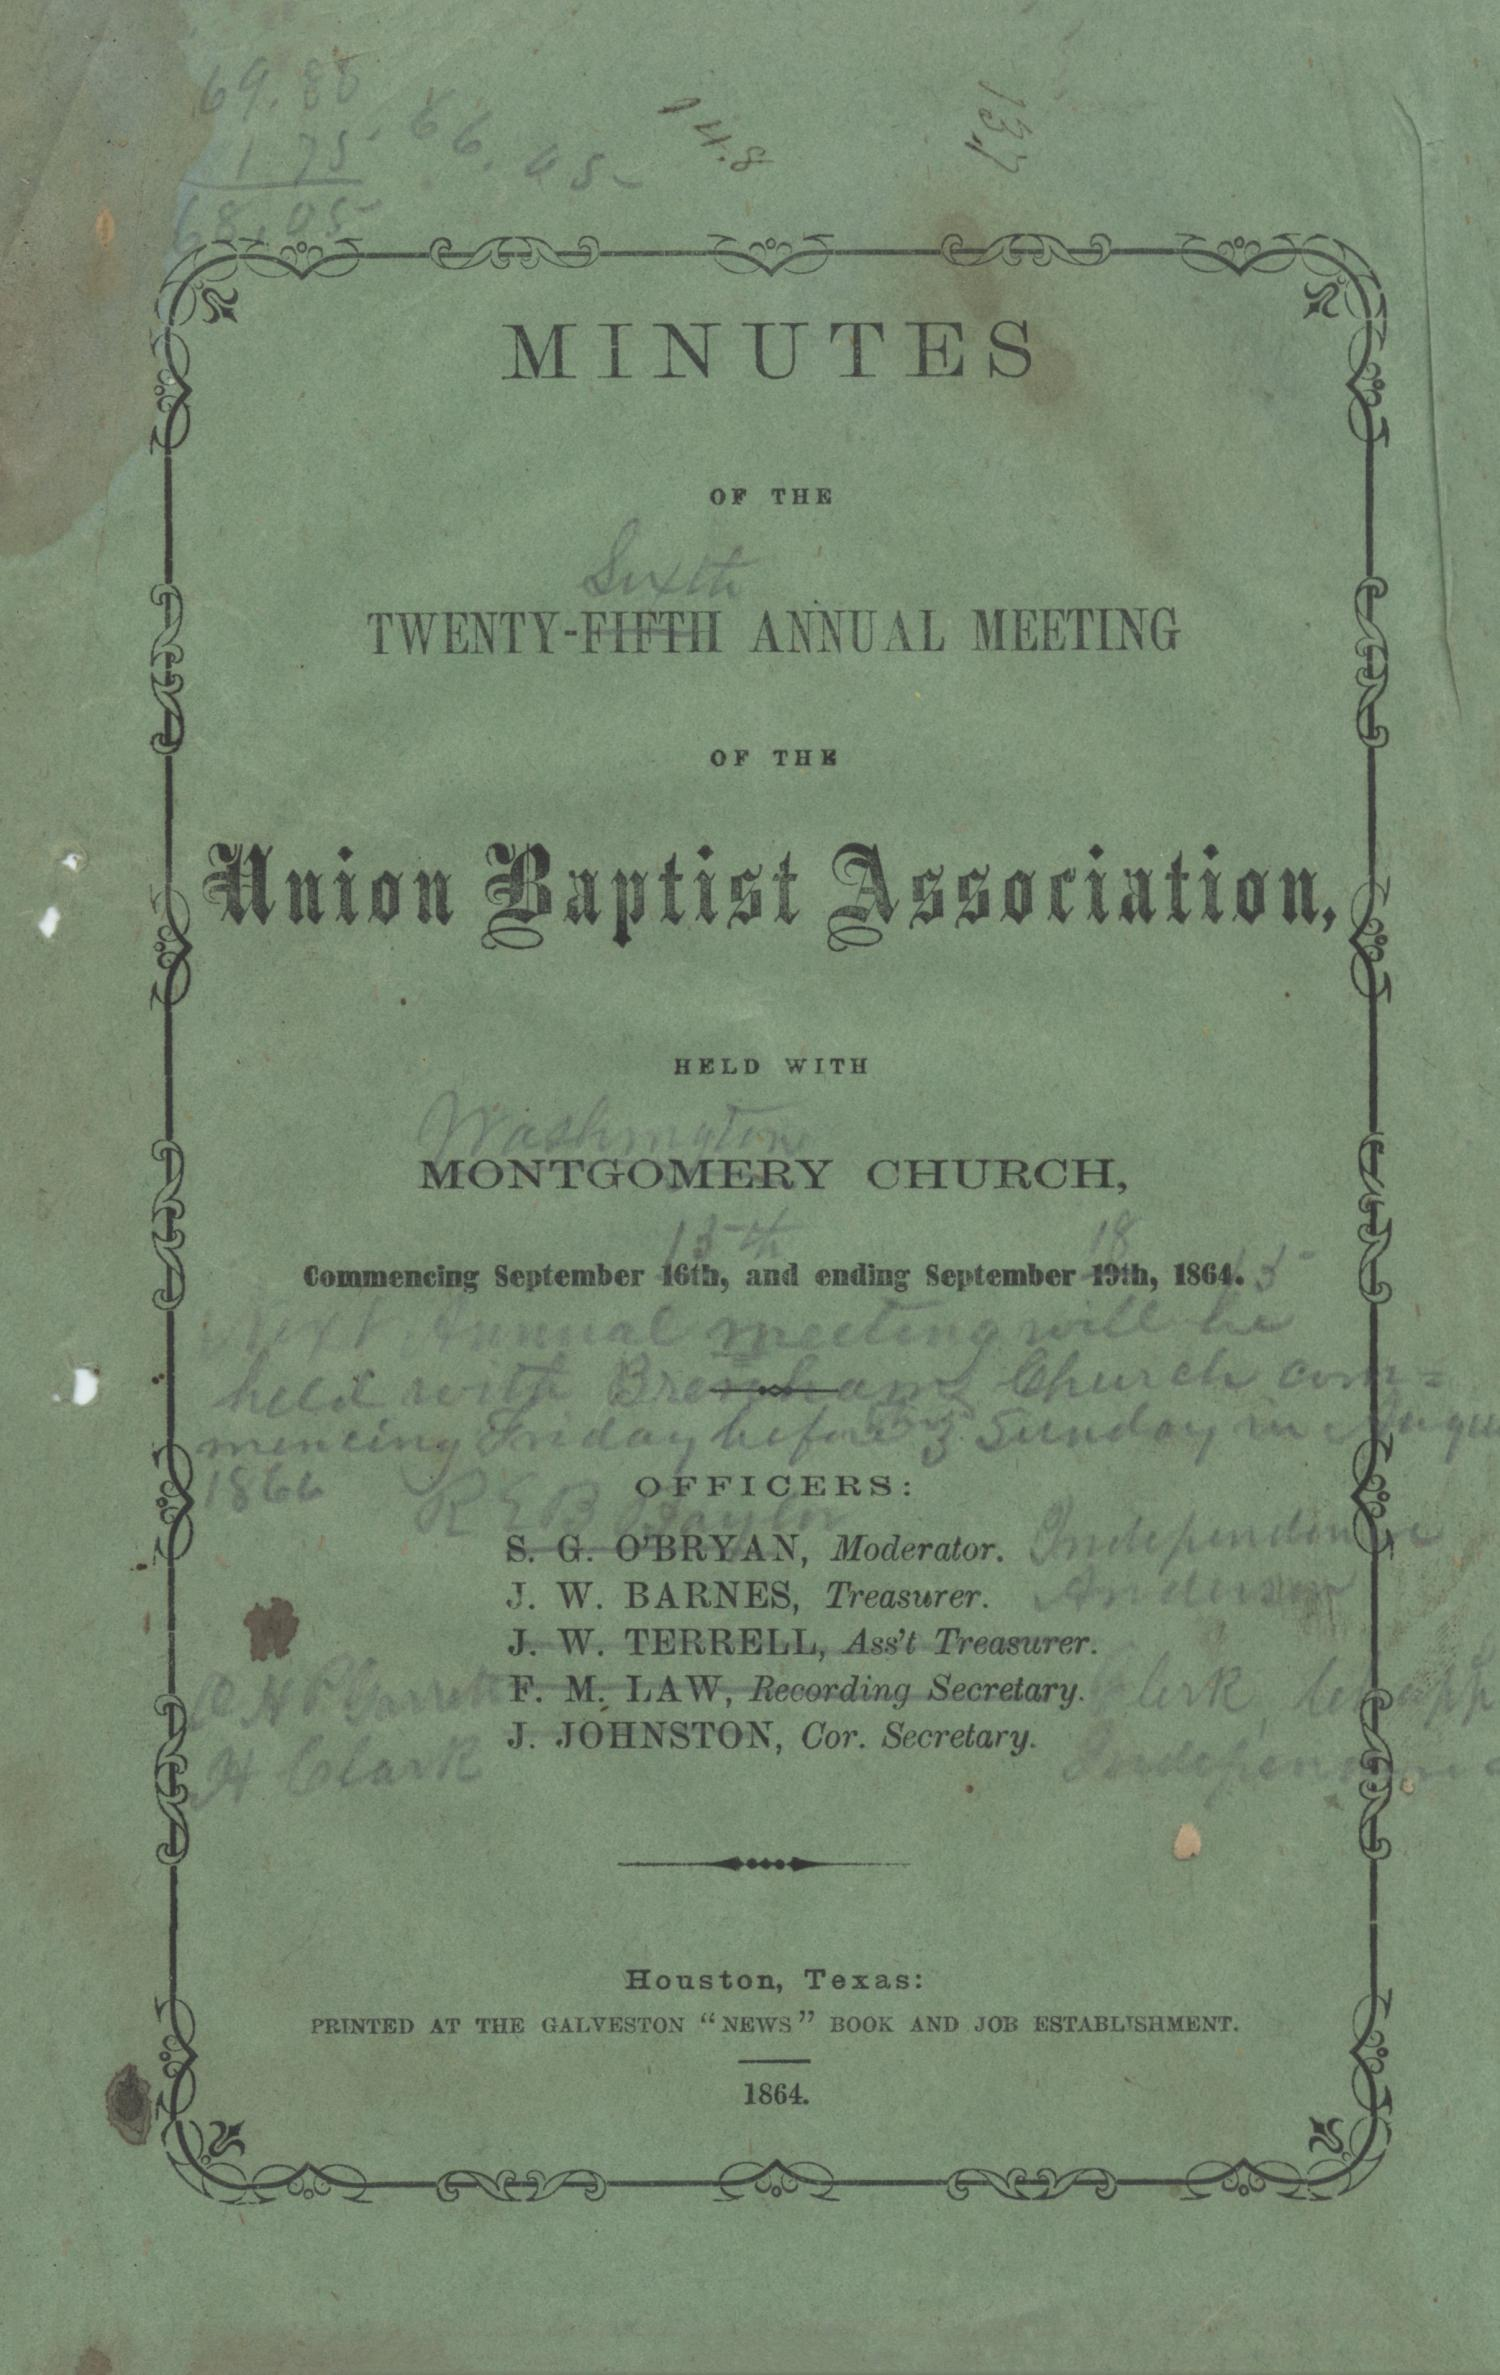 Minutes of the Twenty-Fifth Annual Meeting of the Union Baptist Association, 1864                                                                                                      Front Cover